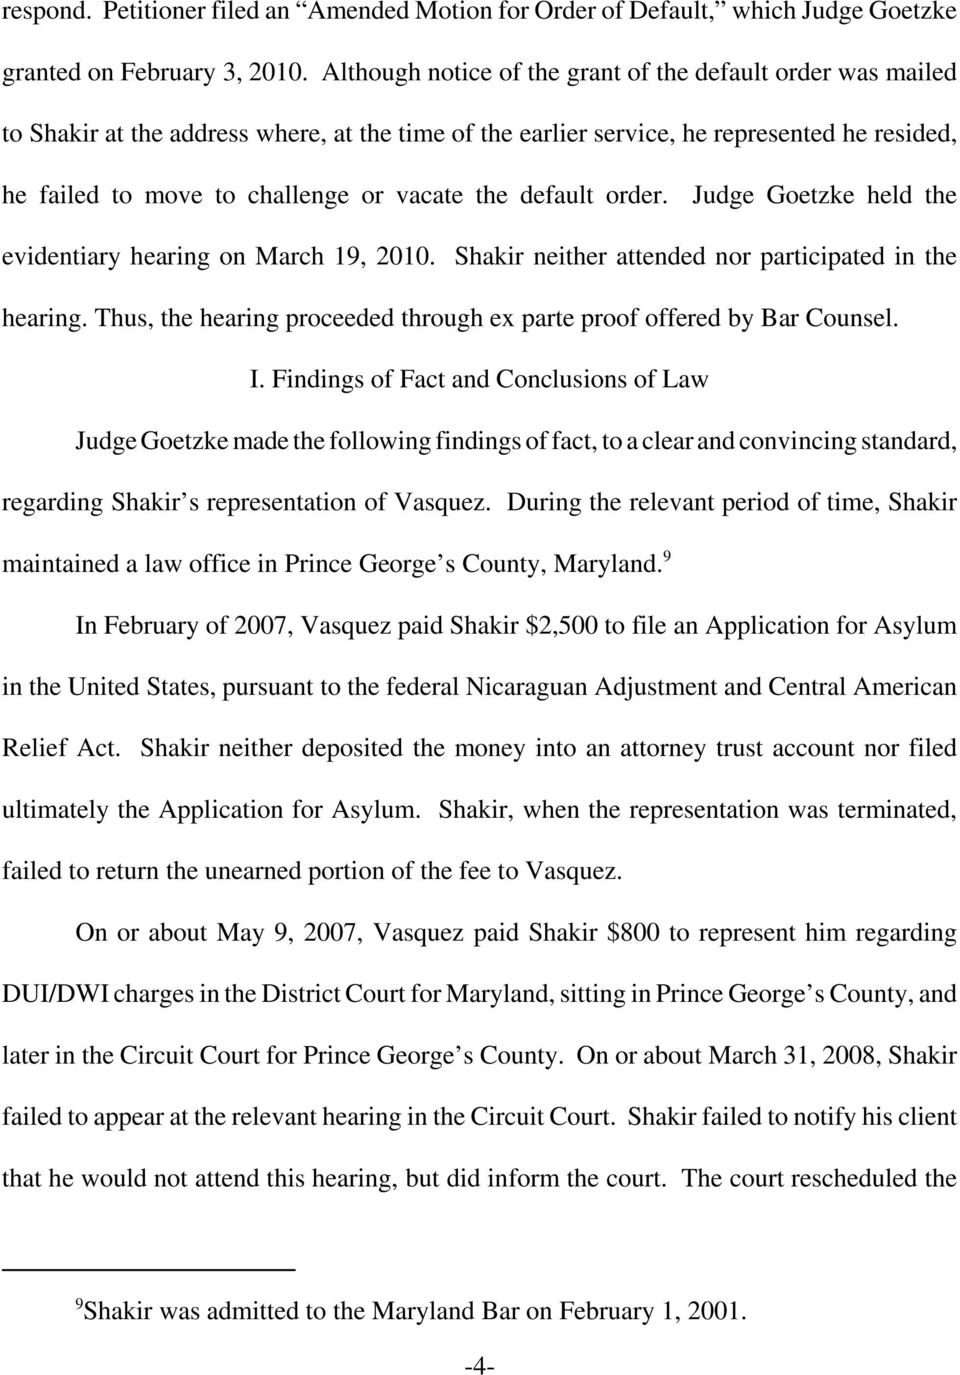 the default order. Judge Goetzke held the evidentiary hearing on March 19, 2010. Shakir neither attended nor participated in the hearing.